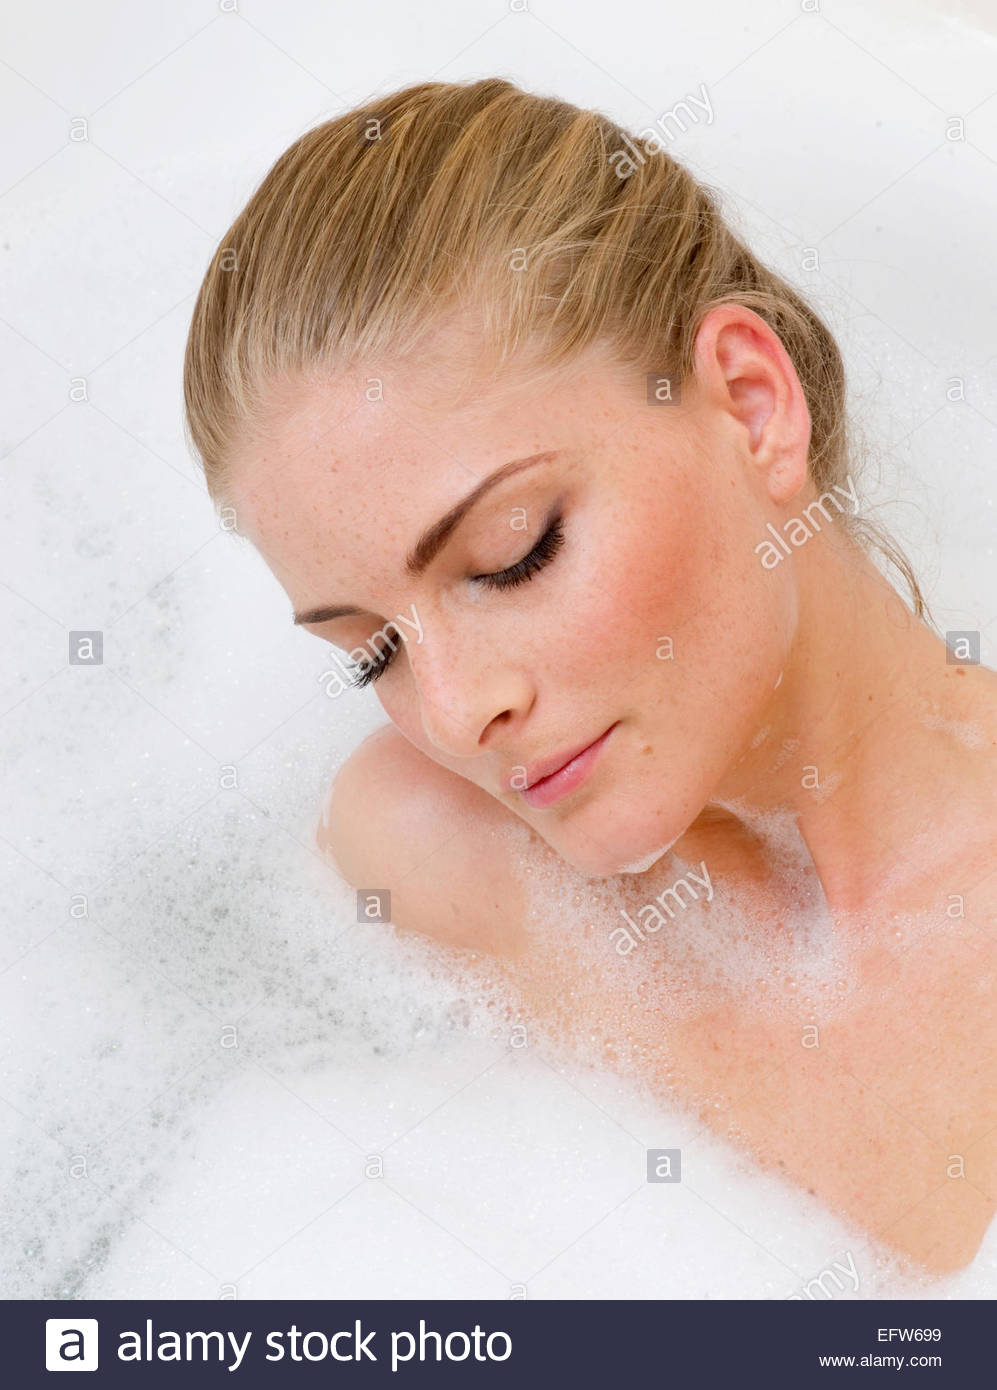 Young washing bathtub bathroom bath bathing Woman Bathtub Shampoo Washing Hair Lifestyle Portrait Young Adult One - Stock Image